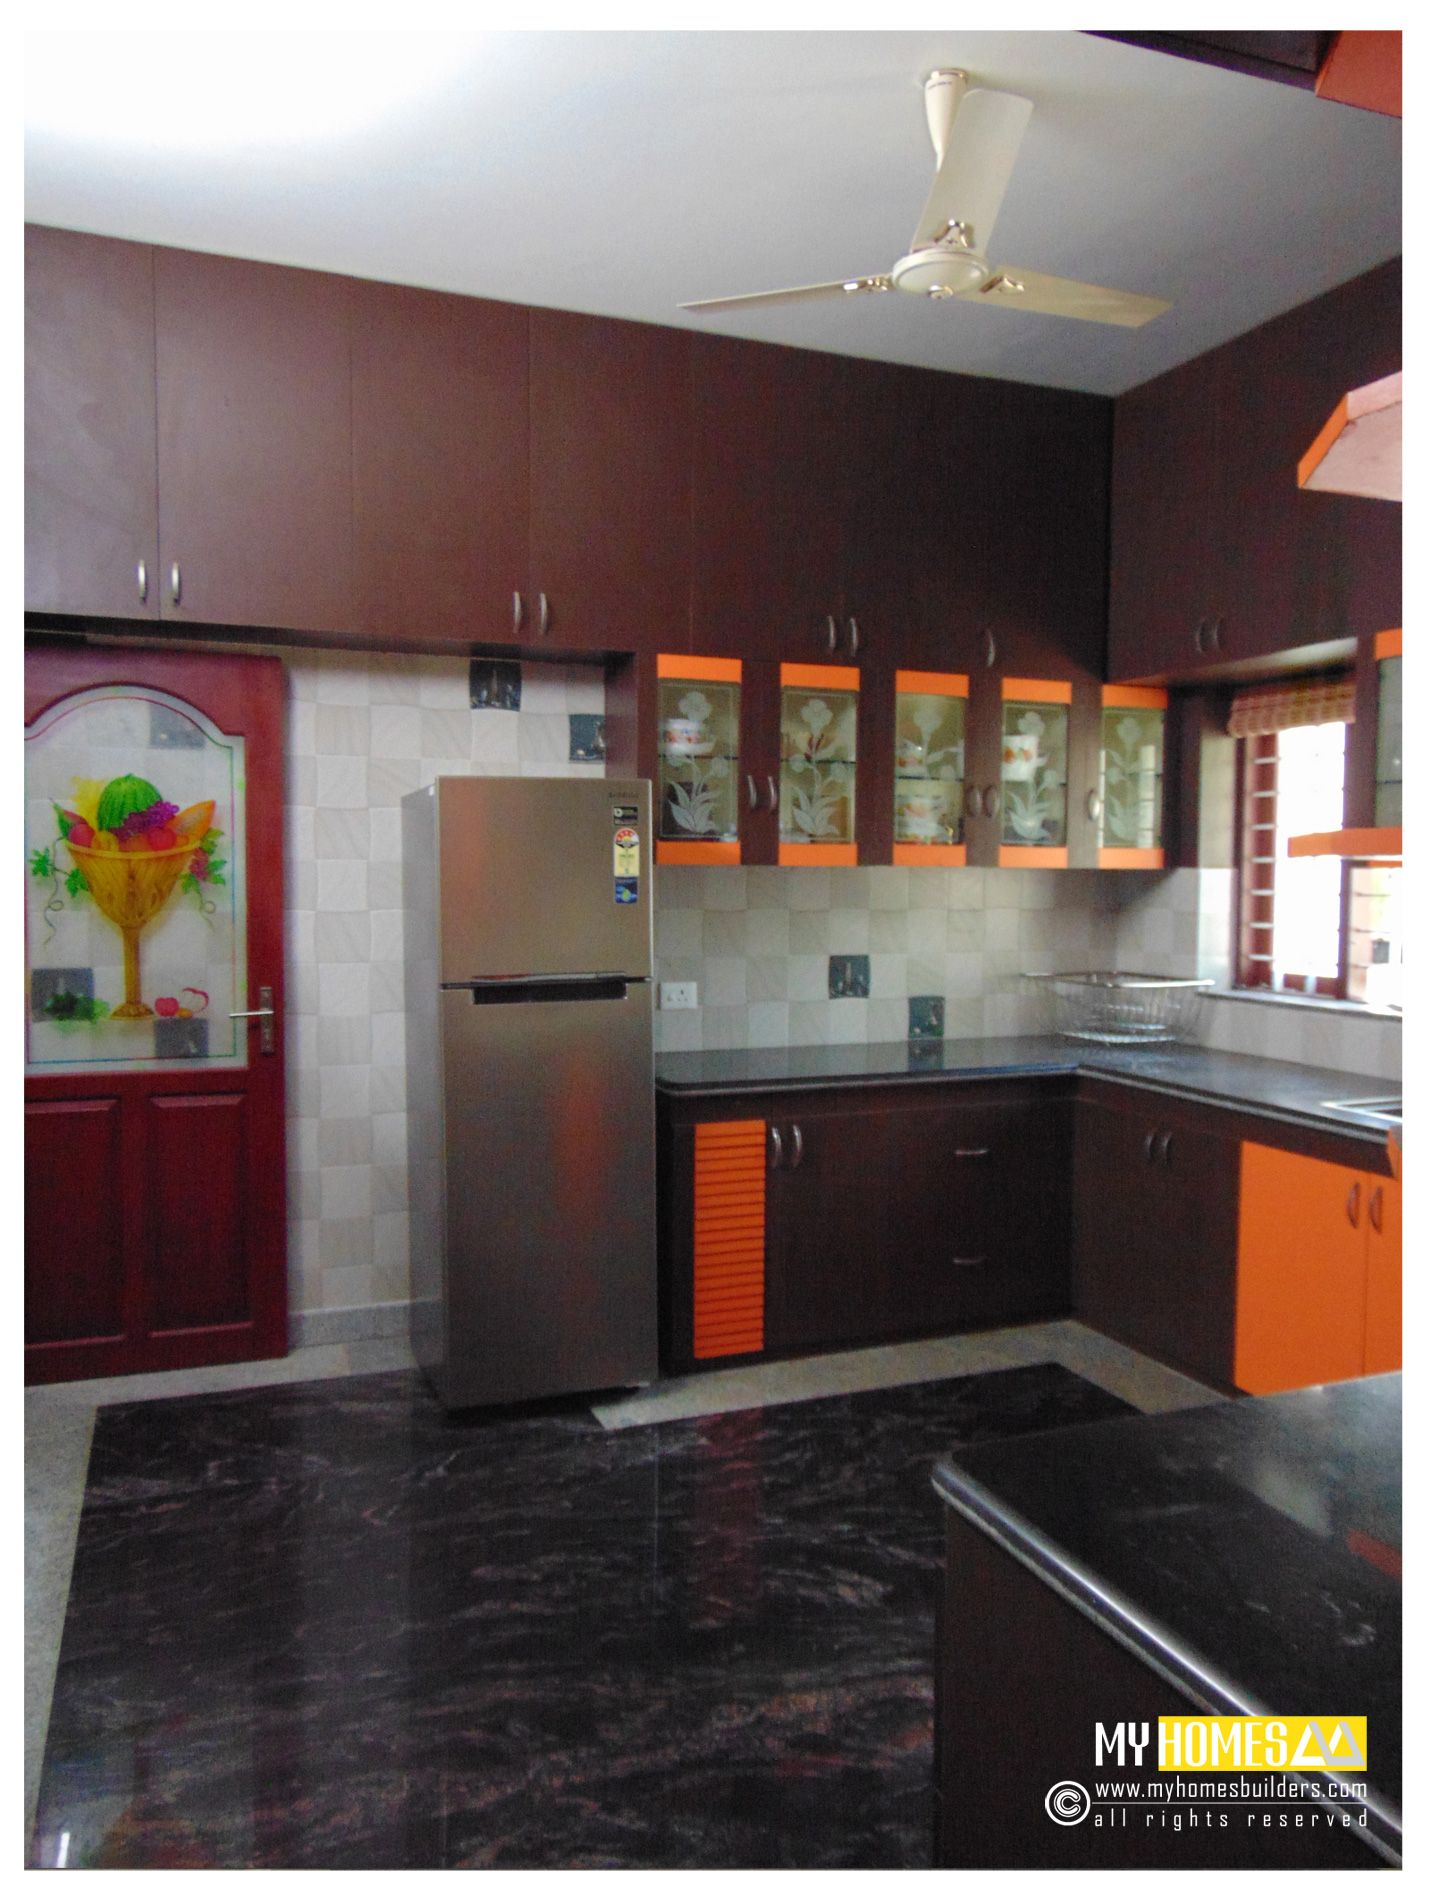 Kitchen cabinet doors in bangalore first time in india architect - Door Price